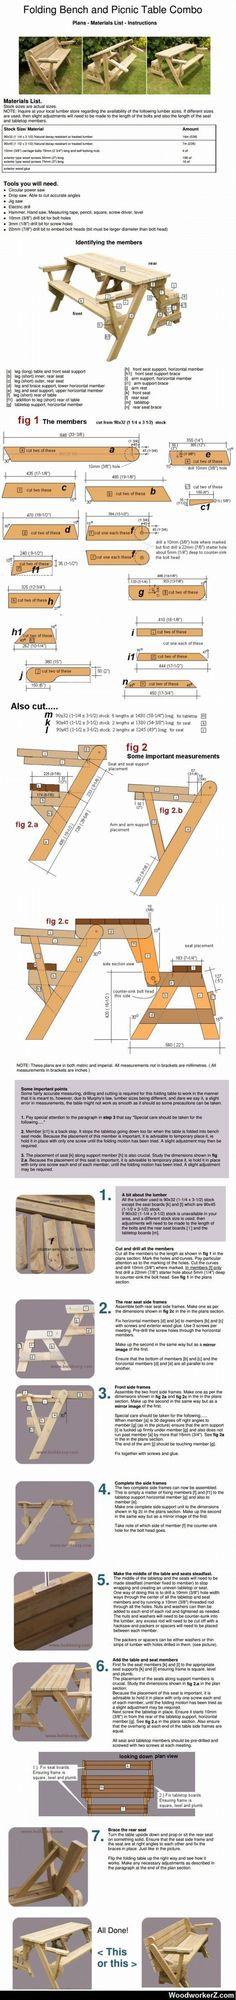 1000 Ideas About Folding Picnic Table On Pinterest Foldable Picnic Table Picnic Tables And